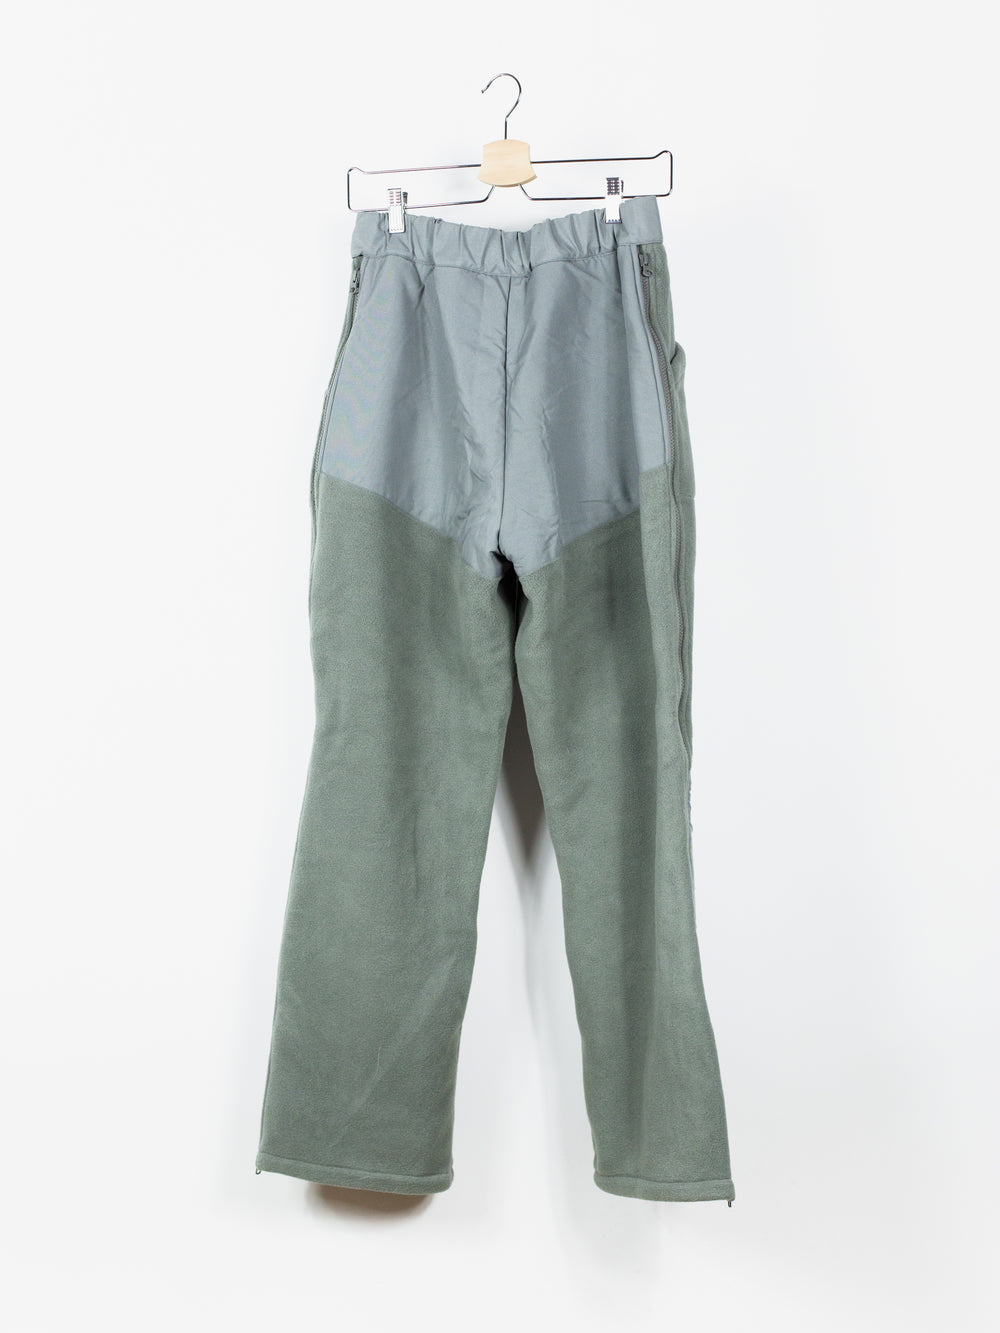 US Issue ECWCS Cold Weather Fleece Pants